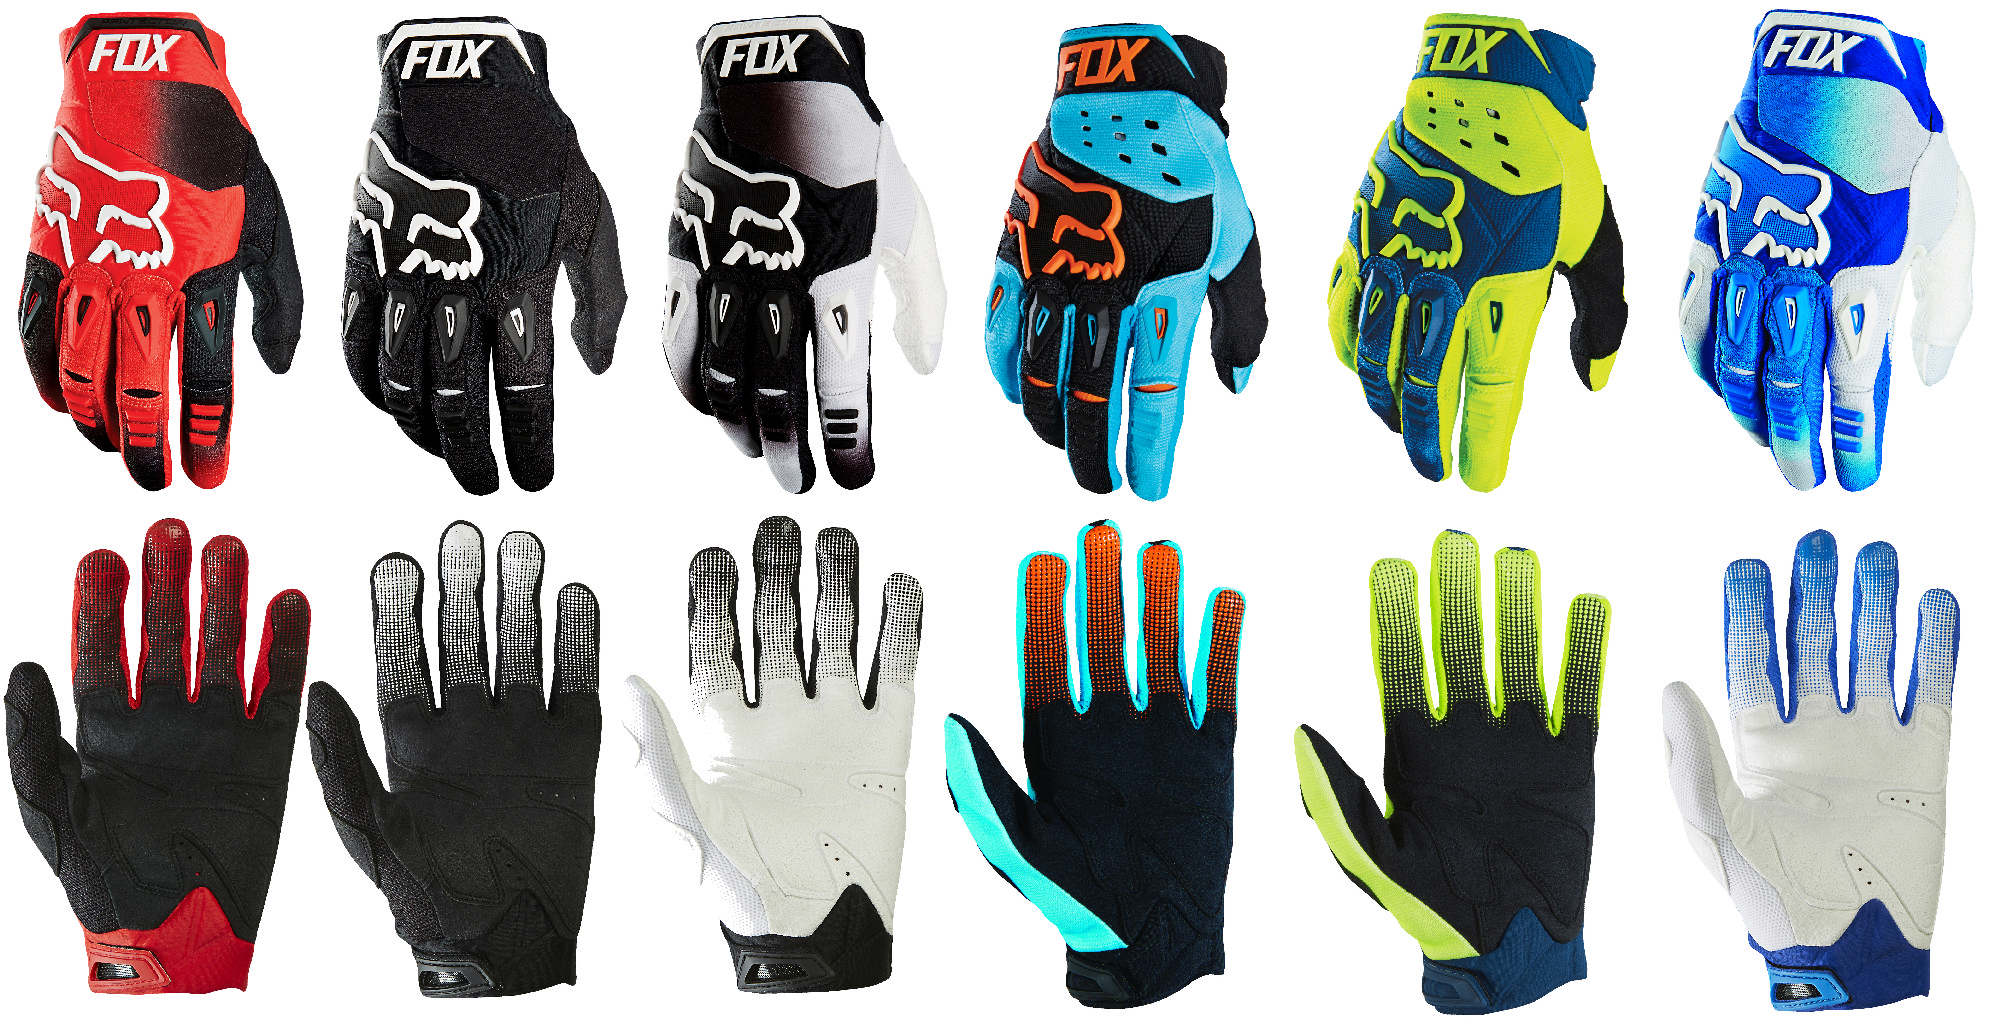 Mens sizes in gloves - Mens Aqua Blue Orange Black Fox Racing Pawtector Race Gloves